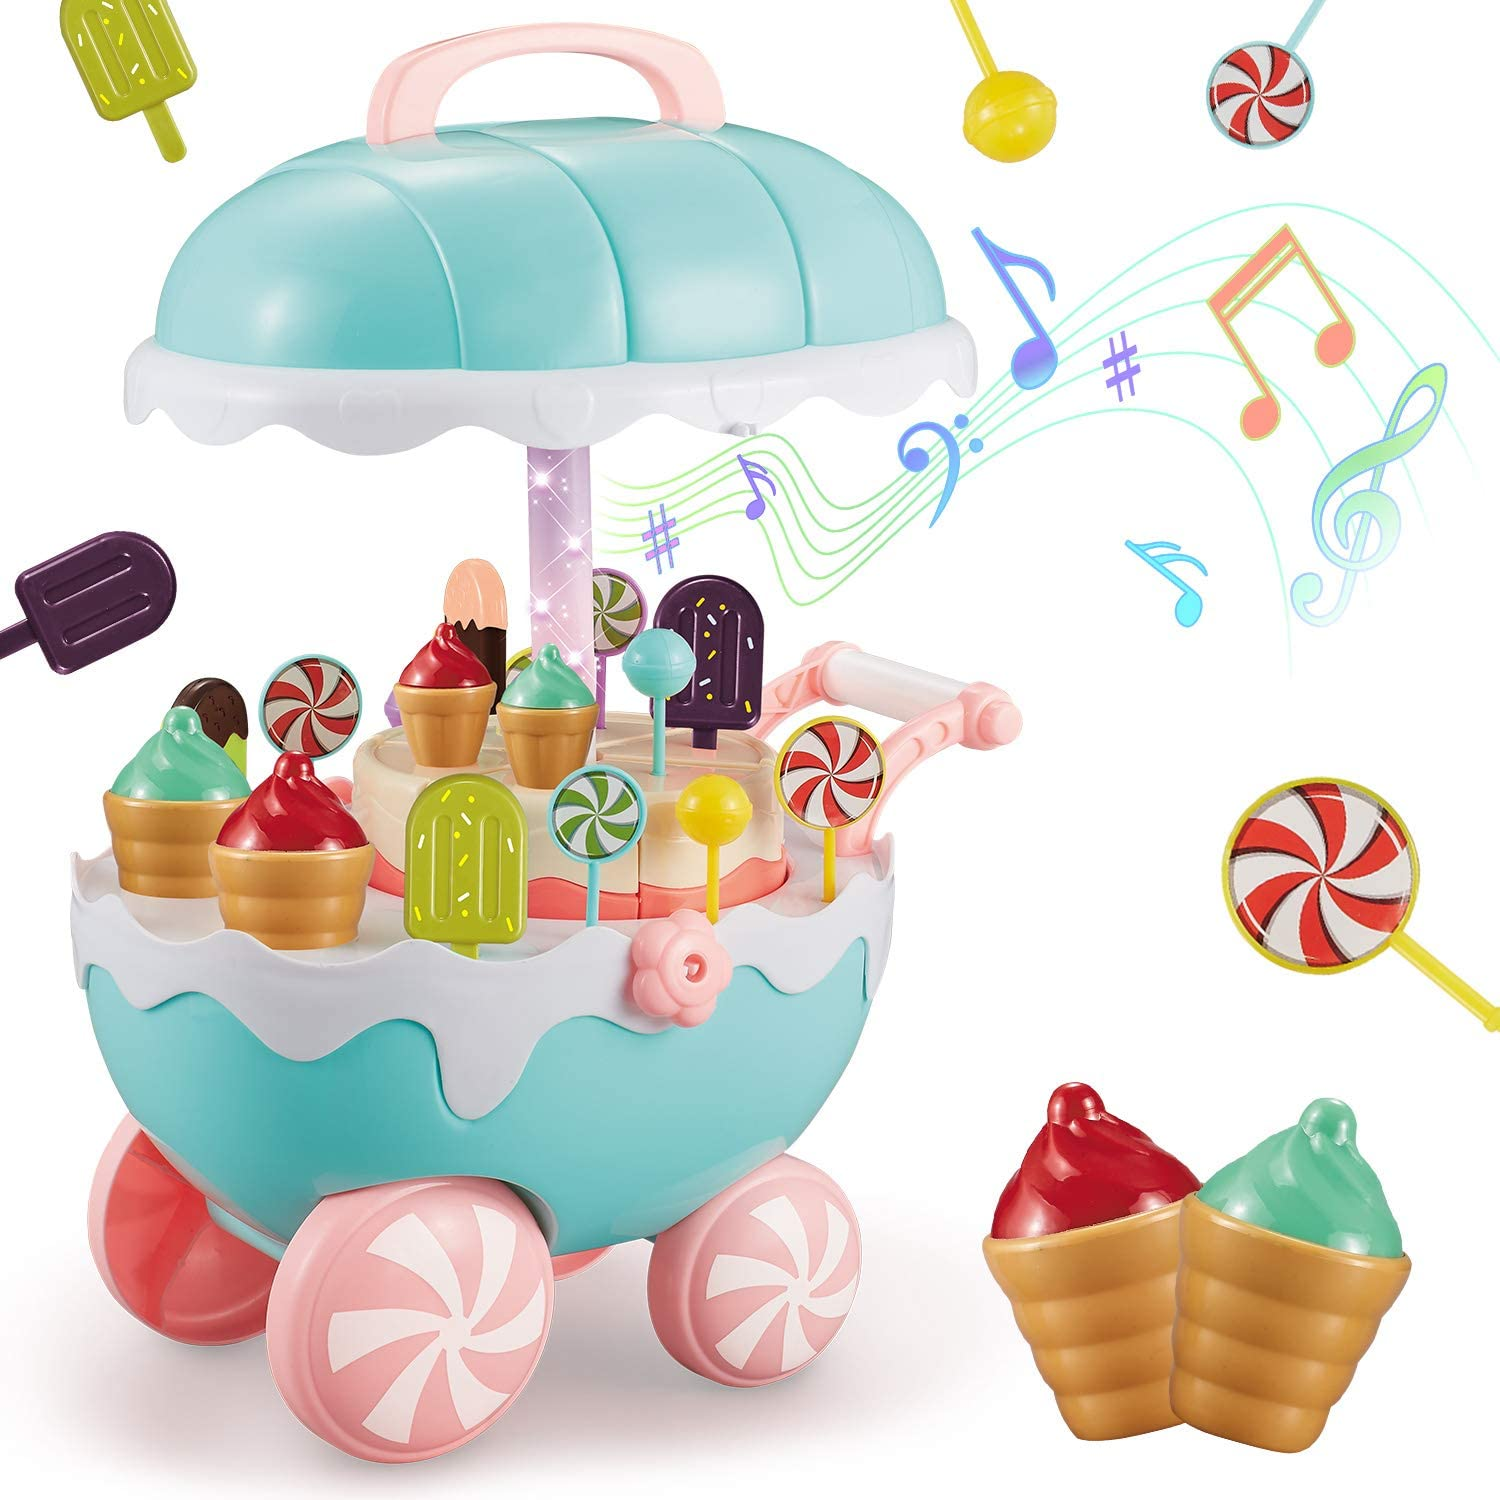 INFANT MOMENT Ice Cream Cart Toys 32pcs Sets, Educational Play Food Ice Cream Truck Toys for Toddlers